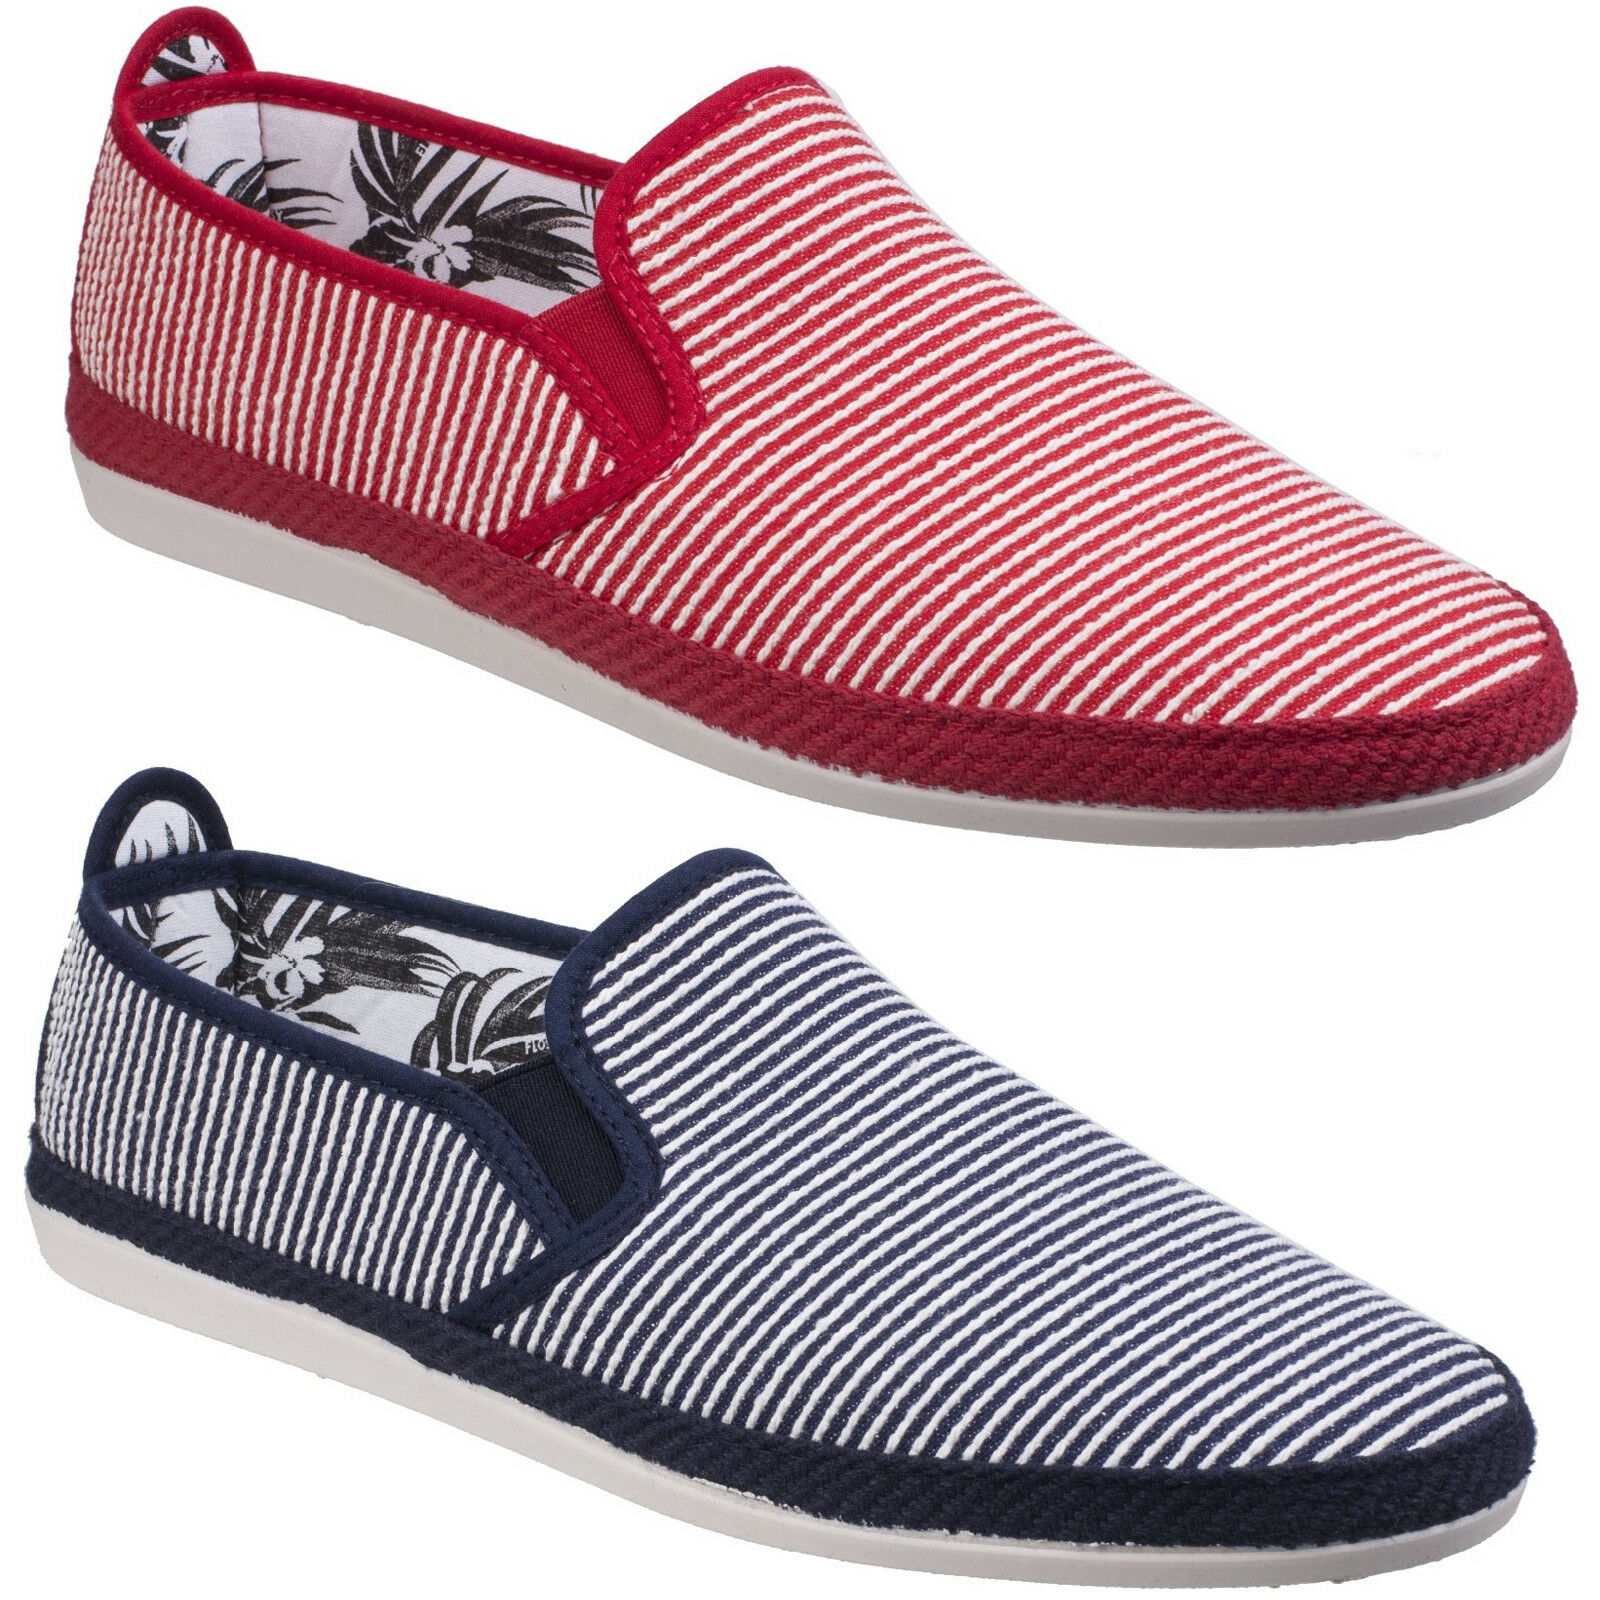 Flossy Brieva Espadrilles Summer Riviera Canvas Pumps Plimsoles shoes Mens